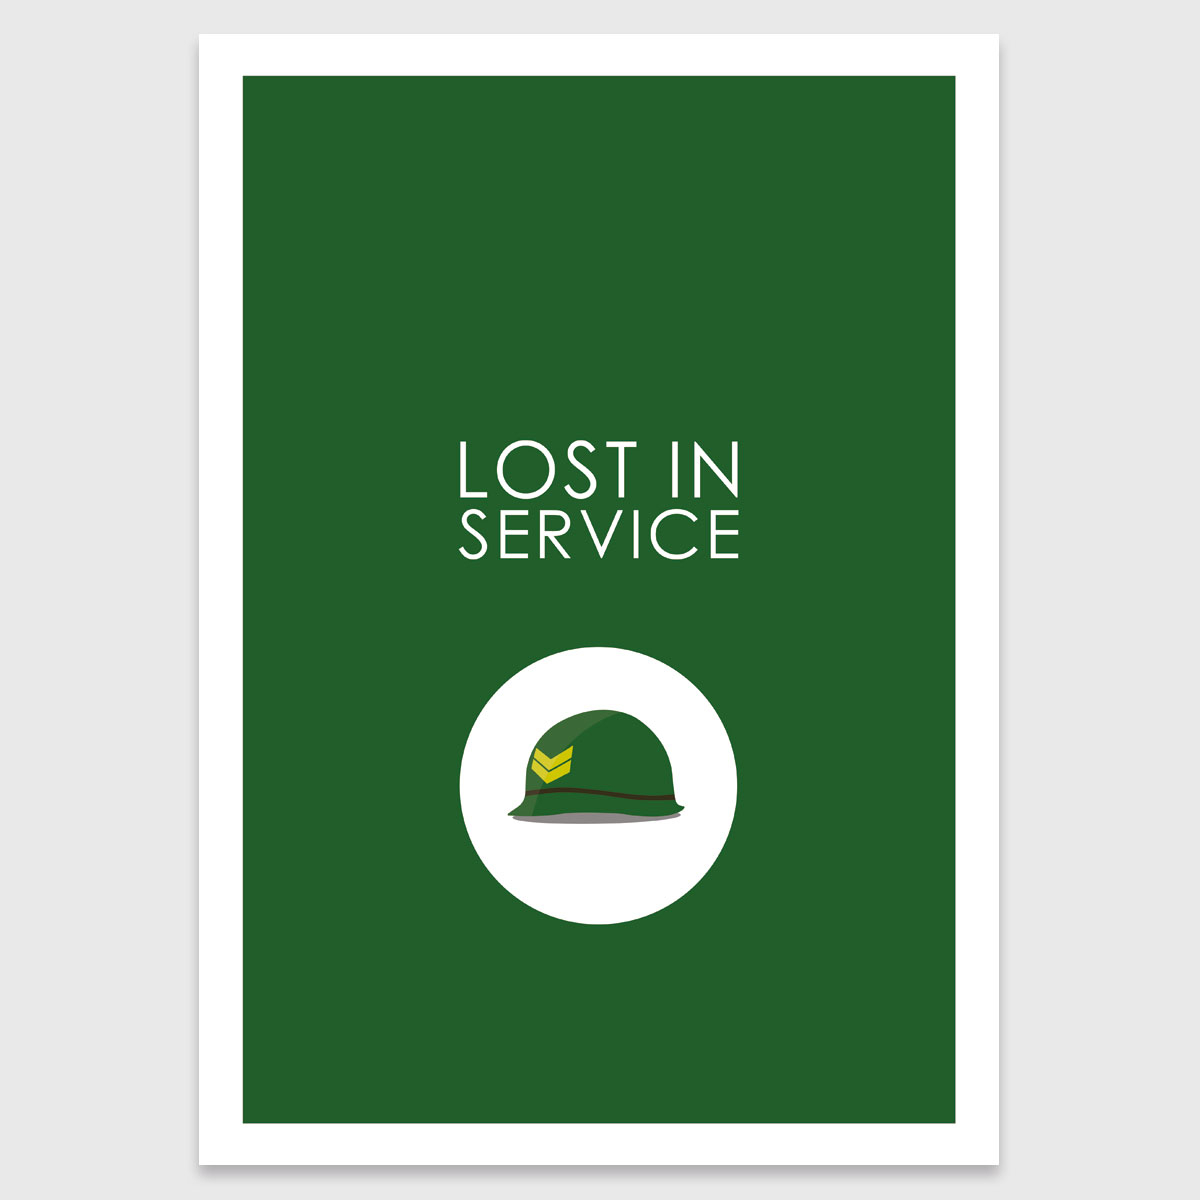 Retro print: Lost in service